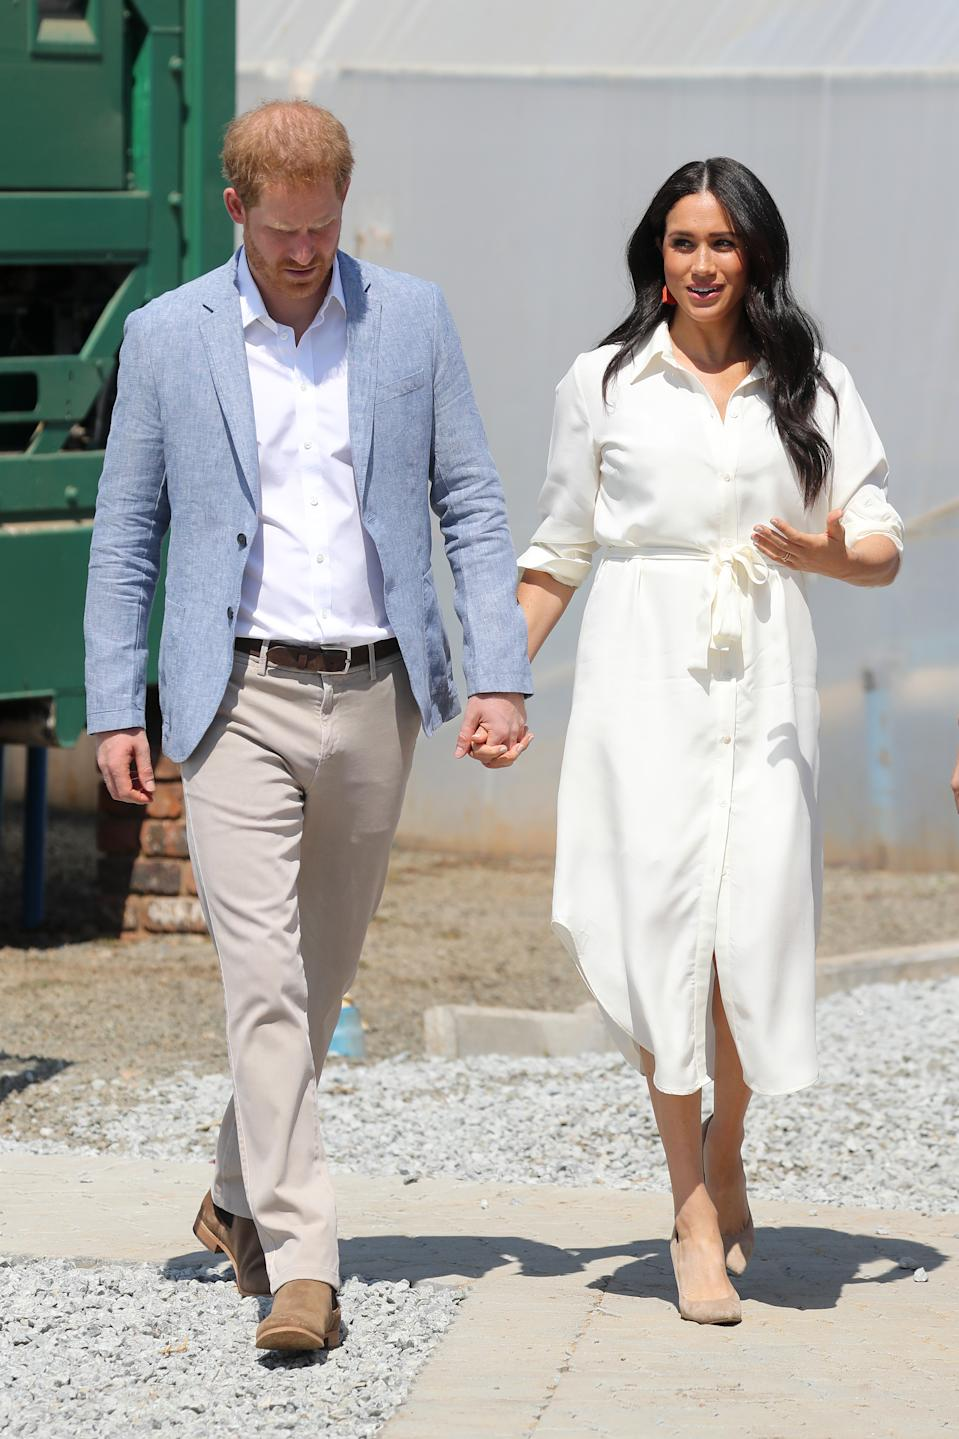 """A white, belted shirt dress was the Duchess' outfit choice for her final day of royal tour engagements. She accessorised with a <a href=""""https://modesens.com/product/madewell-stone-%2526-tassel-earrings-purple-12976633/?refinfo=gSH_ggfMadewfa-ApAcJeEa12976633&utm_source=google&utm_media=CPC&gclid=EAIaIQobChMIr7KVzK_95AIVTdTeCh138gcvEAkYASABEgJPU_D_BwE"""" rel=""""nofollow noopener"""" target=""""_blank"""" data-ylk=""""slk:pair of Madewell, orange tassels earrings"""" class=""""link rapid-noclick-resp"""">pair of Madewell, orange tassels earrings</a> and <a href=""""https://www.stuartweitzman.com/products/leigh-95/"""" rel=""""nofollow noopener"""" target=""""_blank"""" data-ylk=""""slk:Stuart Weitzman heels"""" class=""""link rapid-noclick-resp"""">Stuart Weitzman heels</a>. <em>[Photo: Getty Images]</em>"""